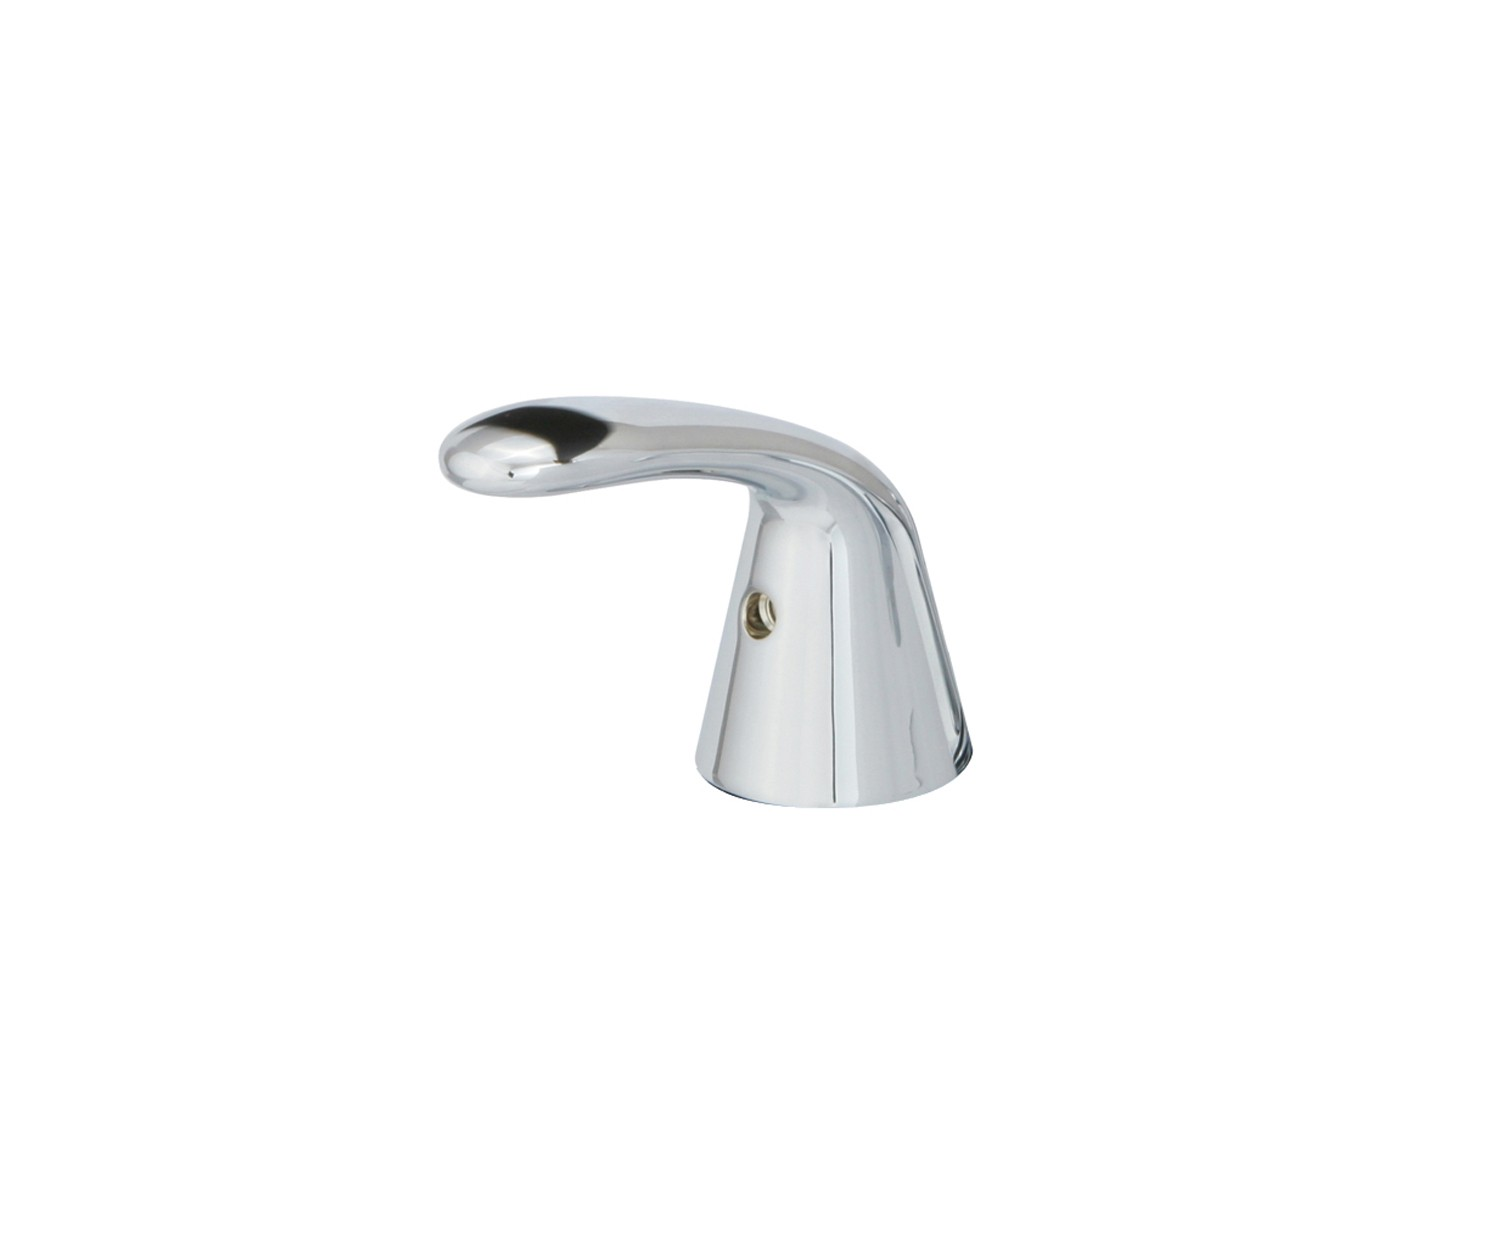 Replacement Cold Handle 14245C-01